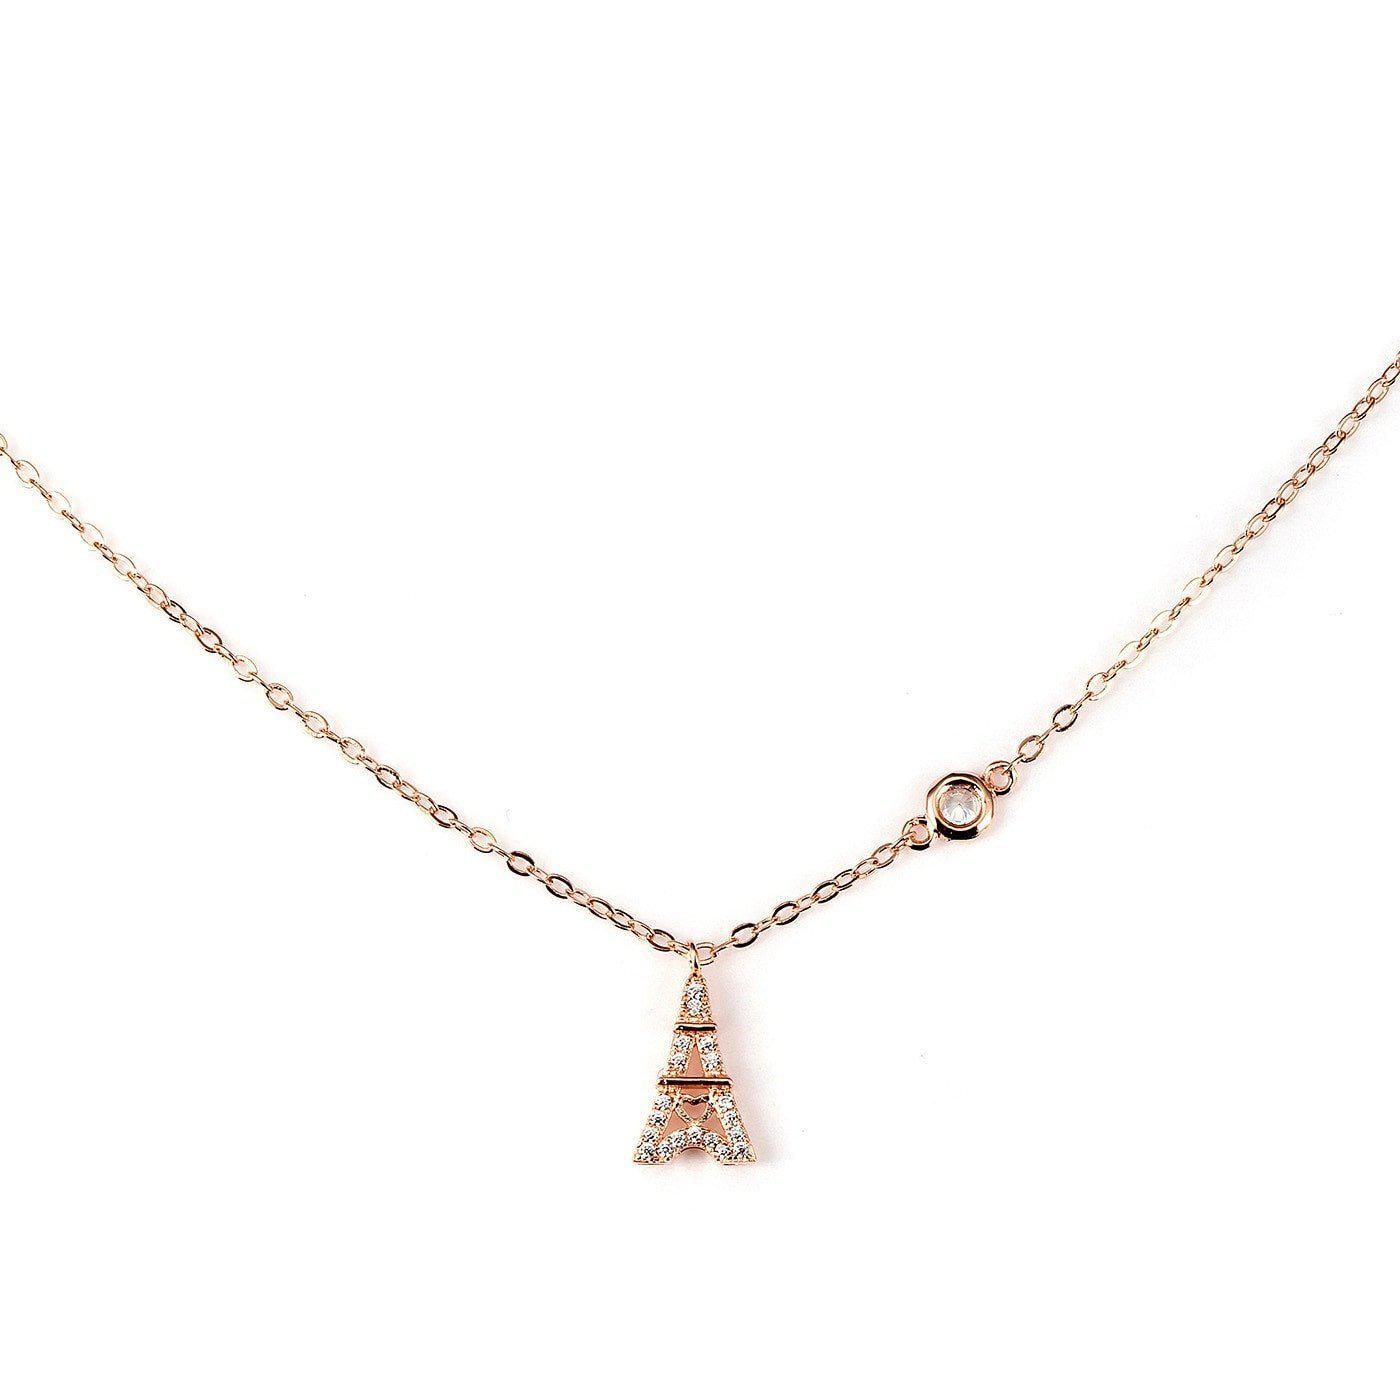 Evening in Paris Necklace-Blinglane